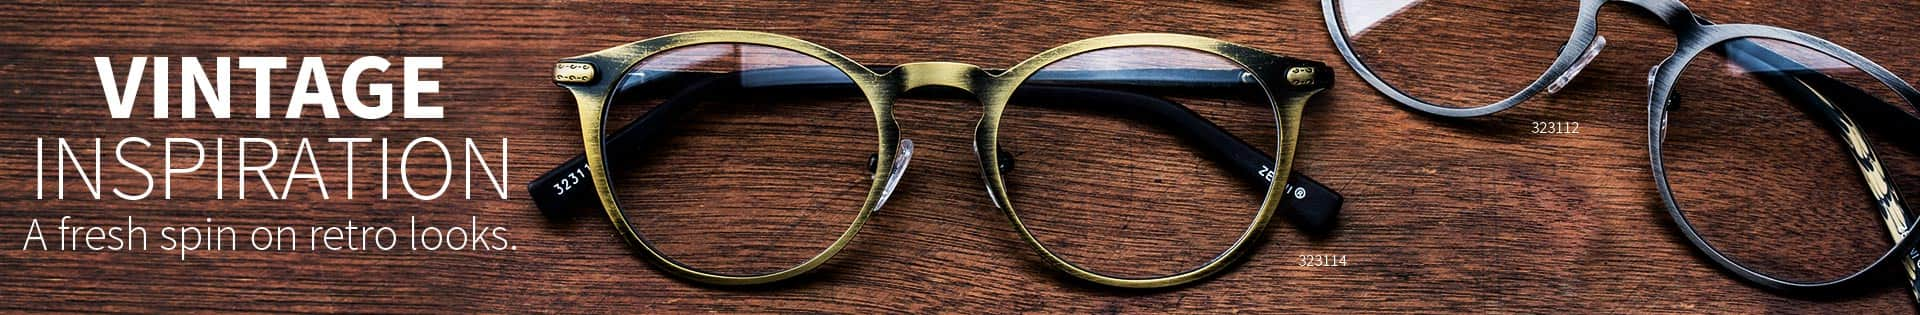 Vintage inspired round frame #323114 in brushed bronze and #323112 in brushed silver.